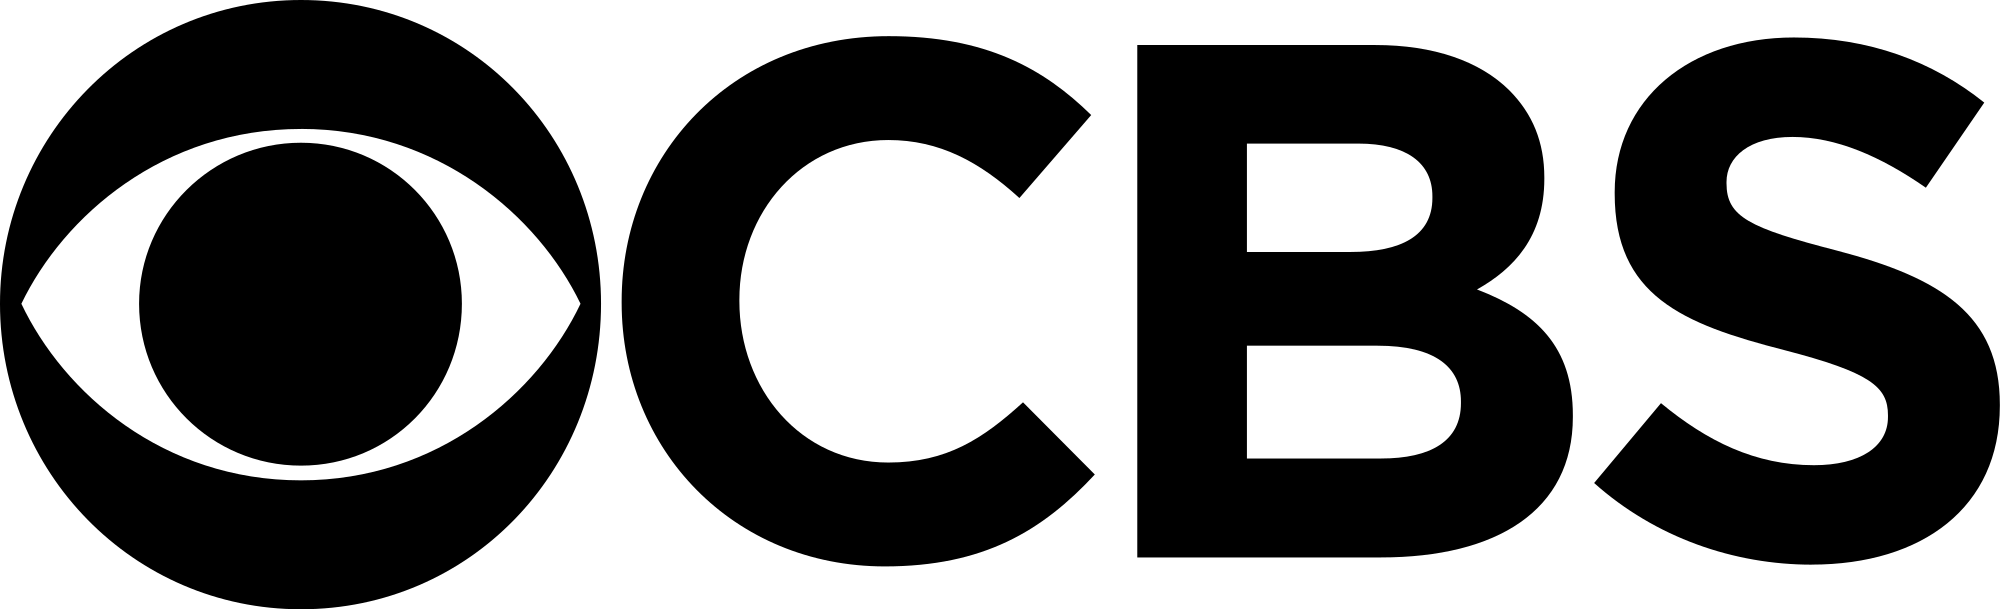 CBS Logo - File:CBS logo.svg - Wikimedia Commons